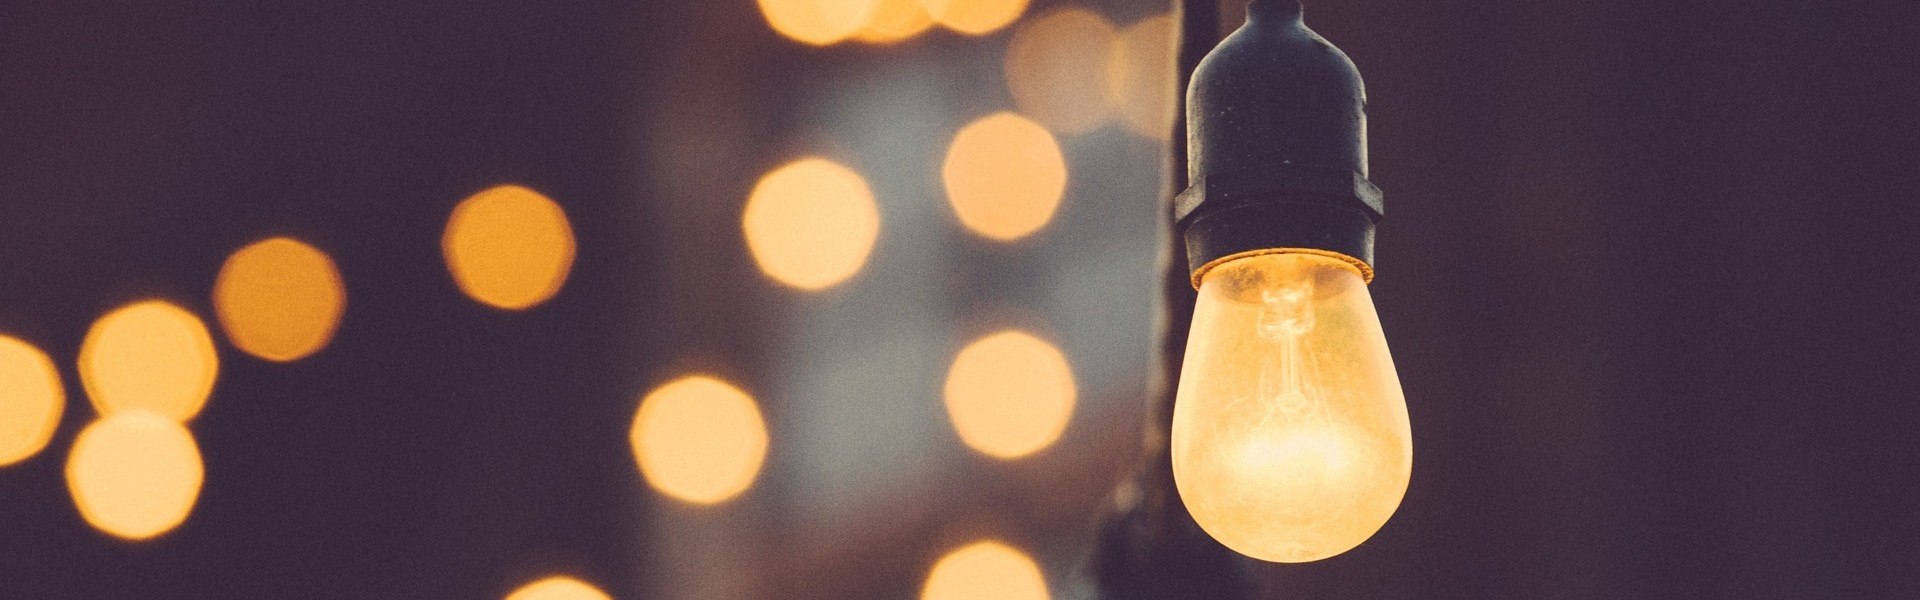 light bulb nlo